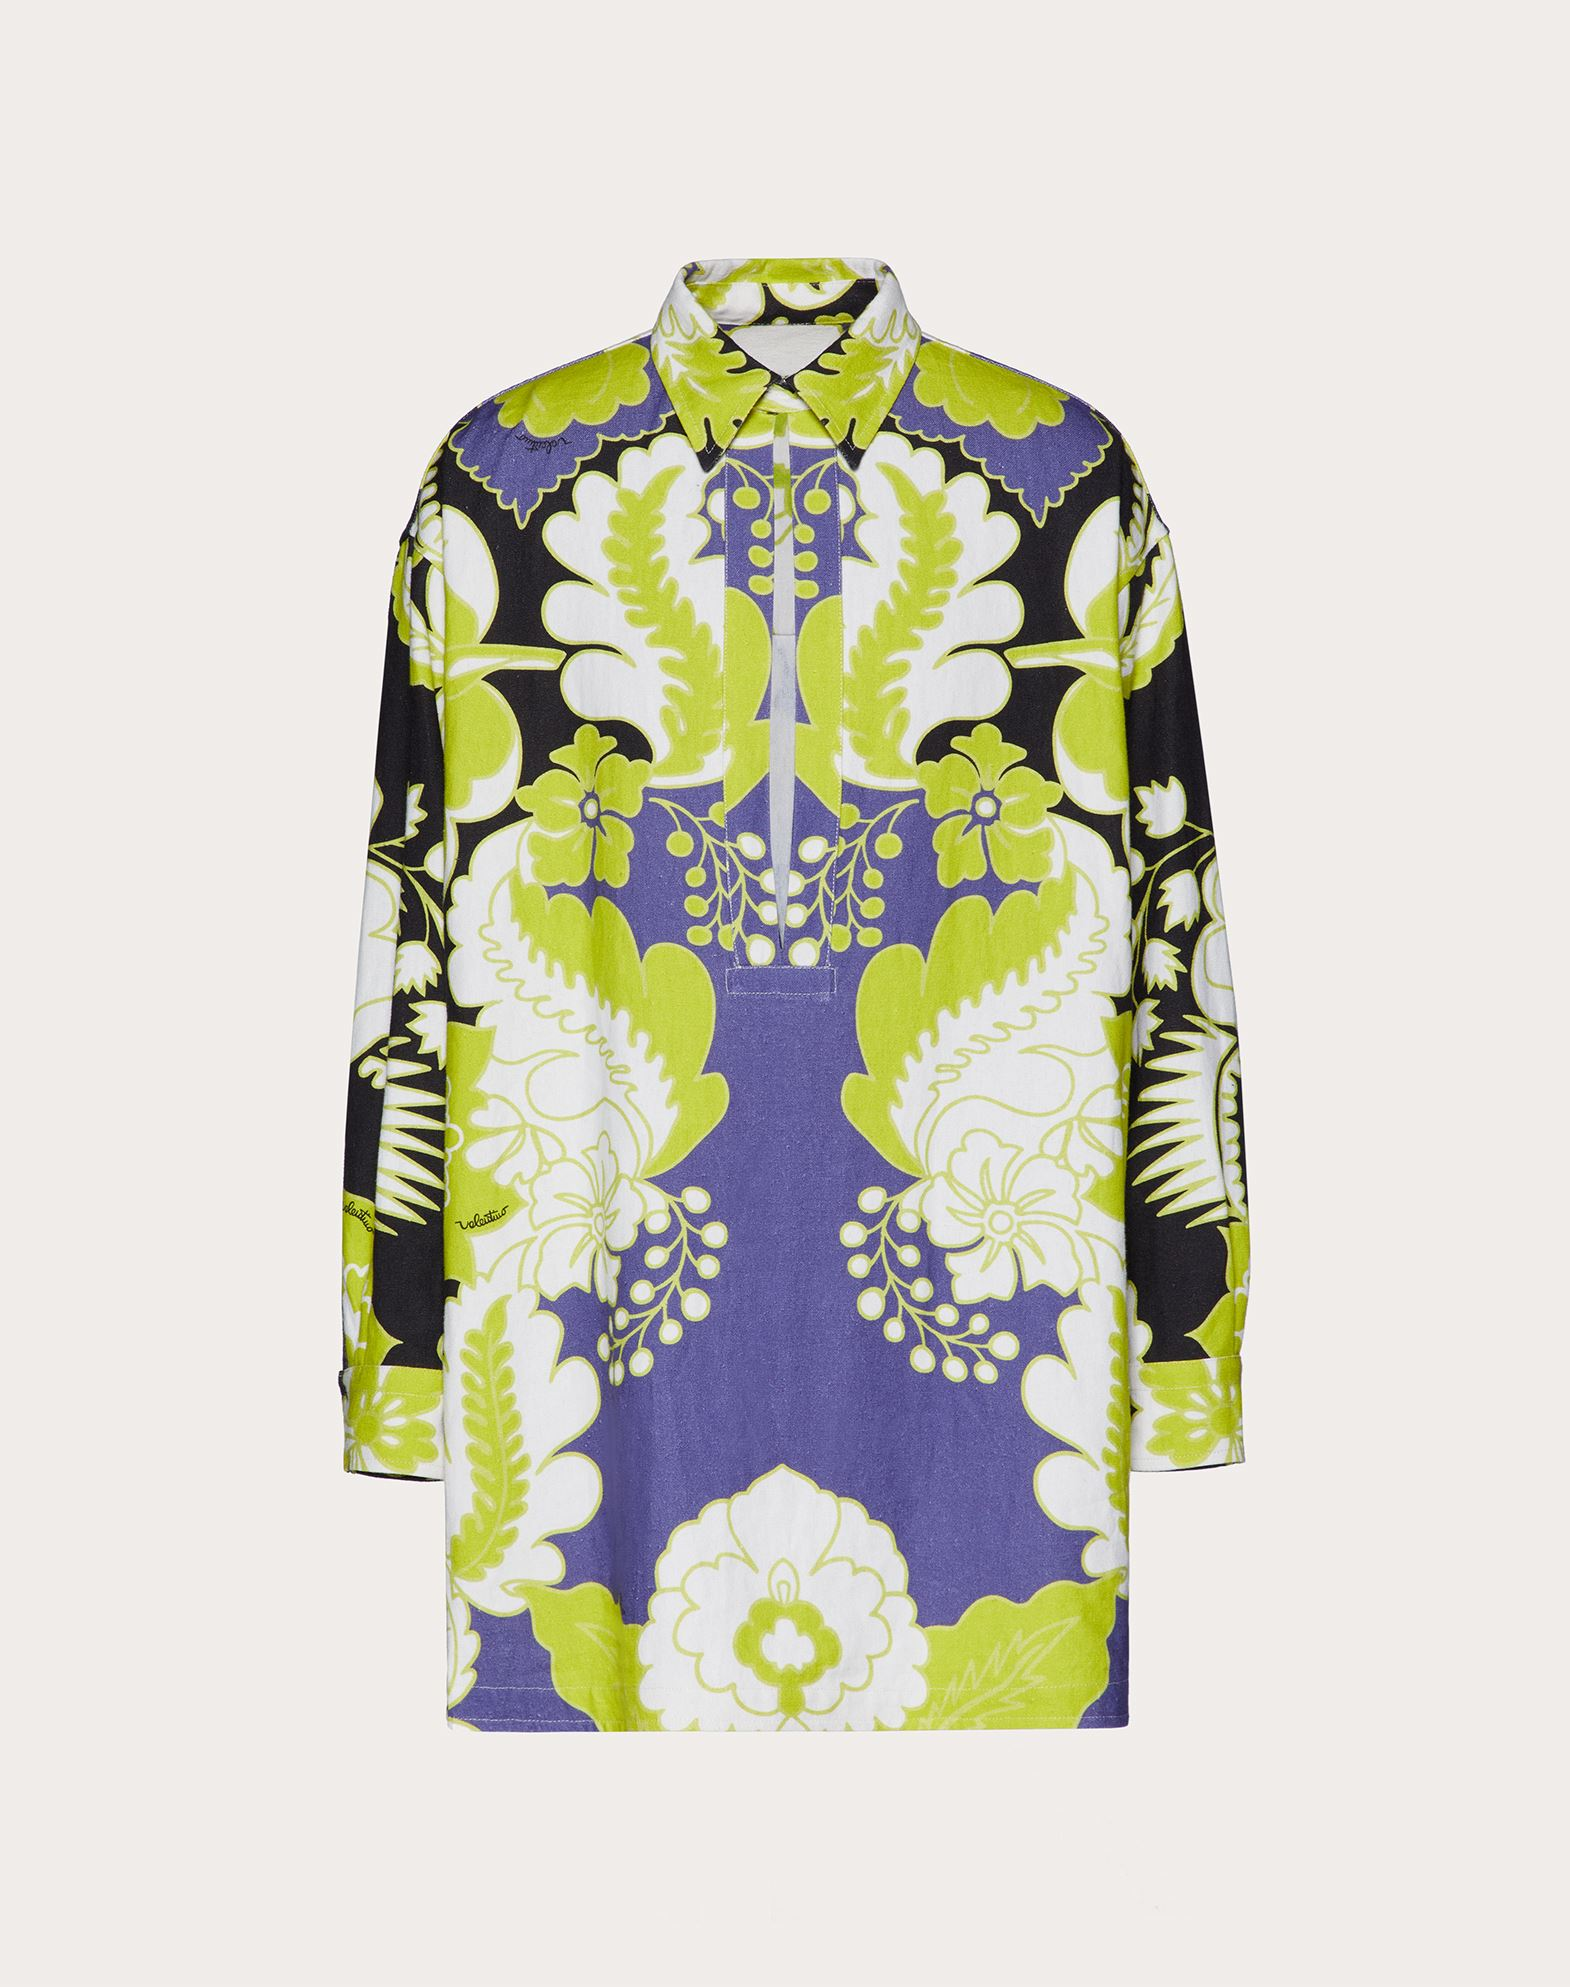 Valentino VALENTINO UOMO HEMP SHIRT WITH WORLD ARAZZO PRINT